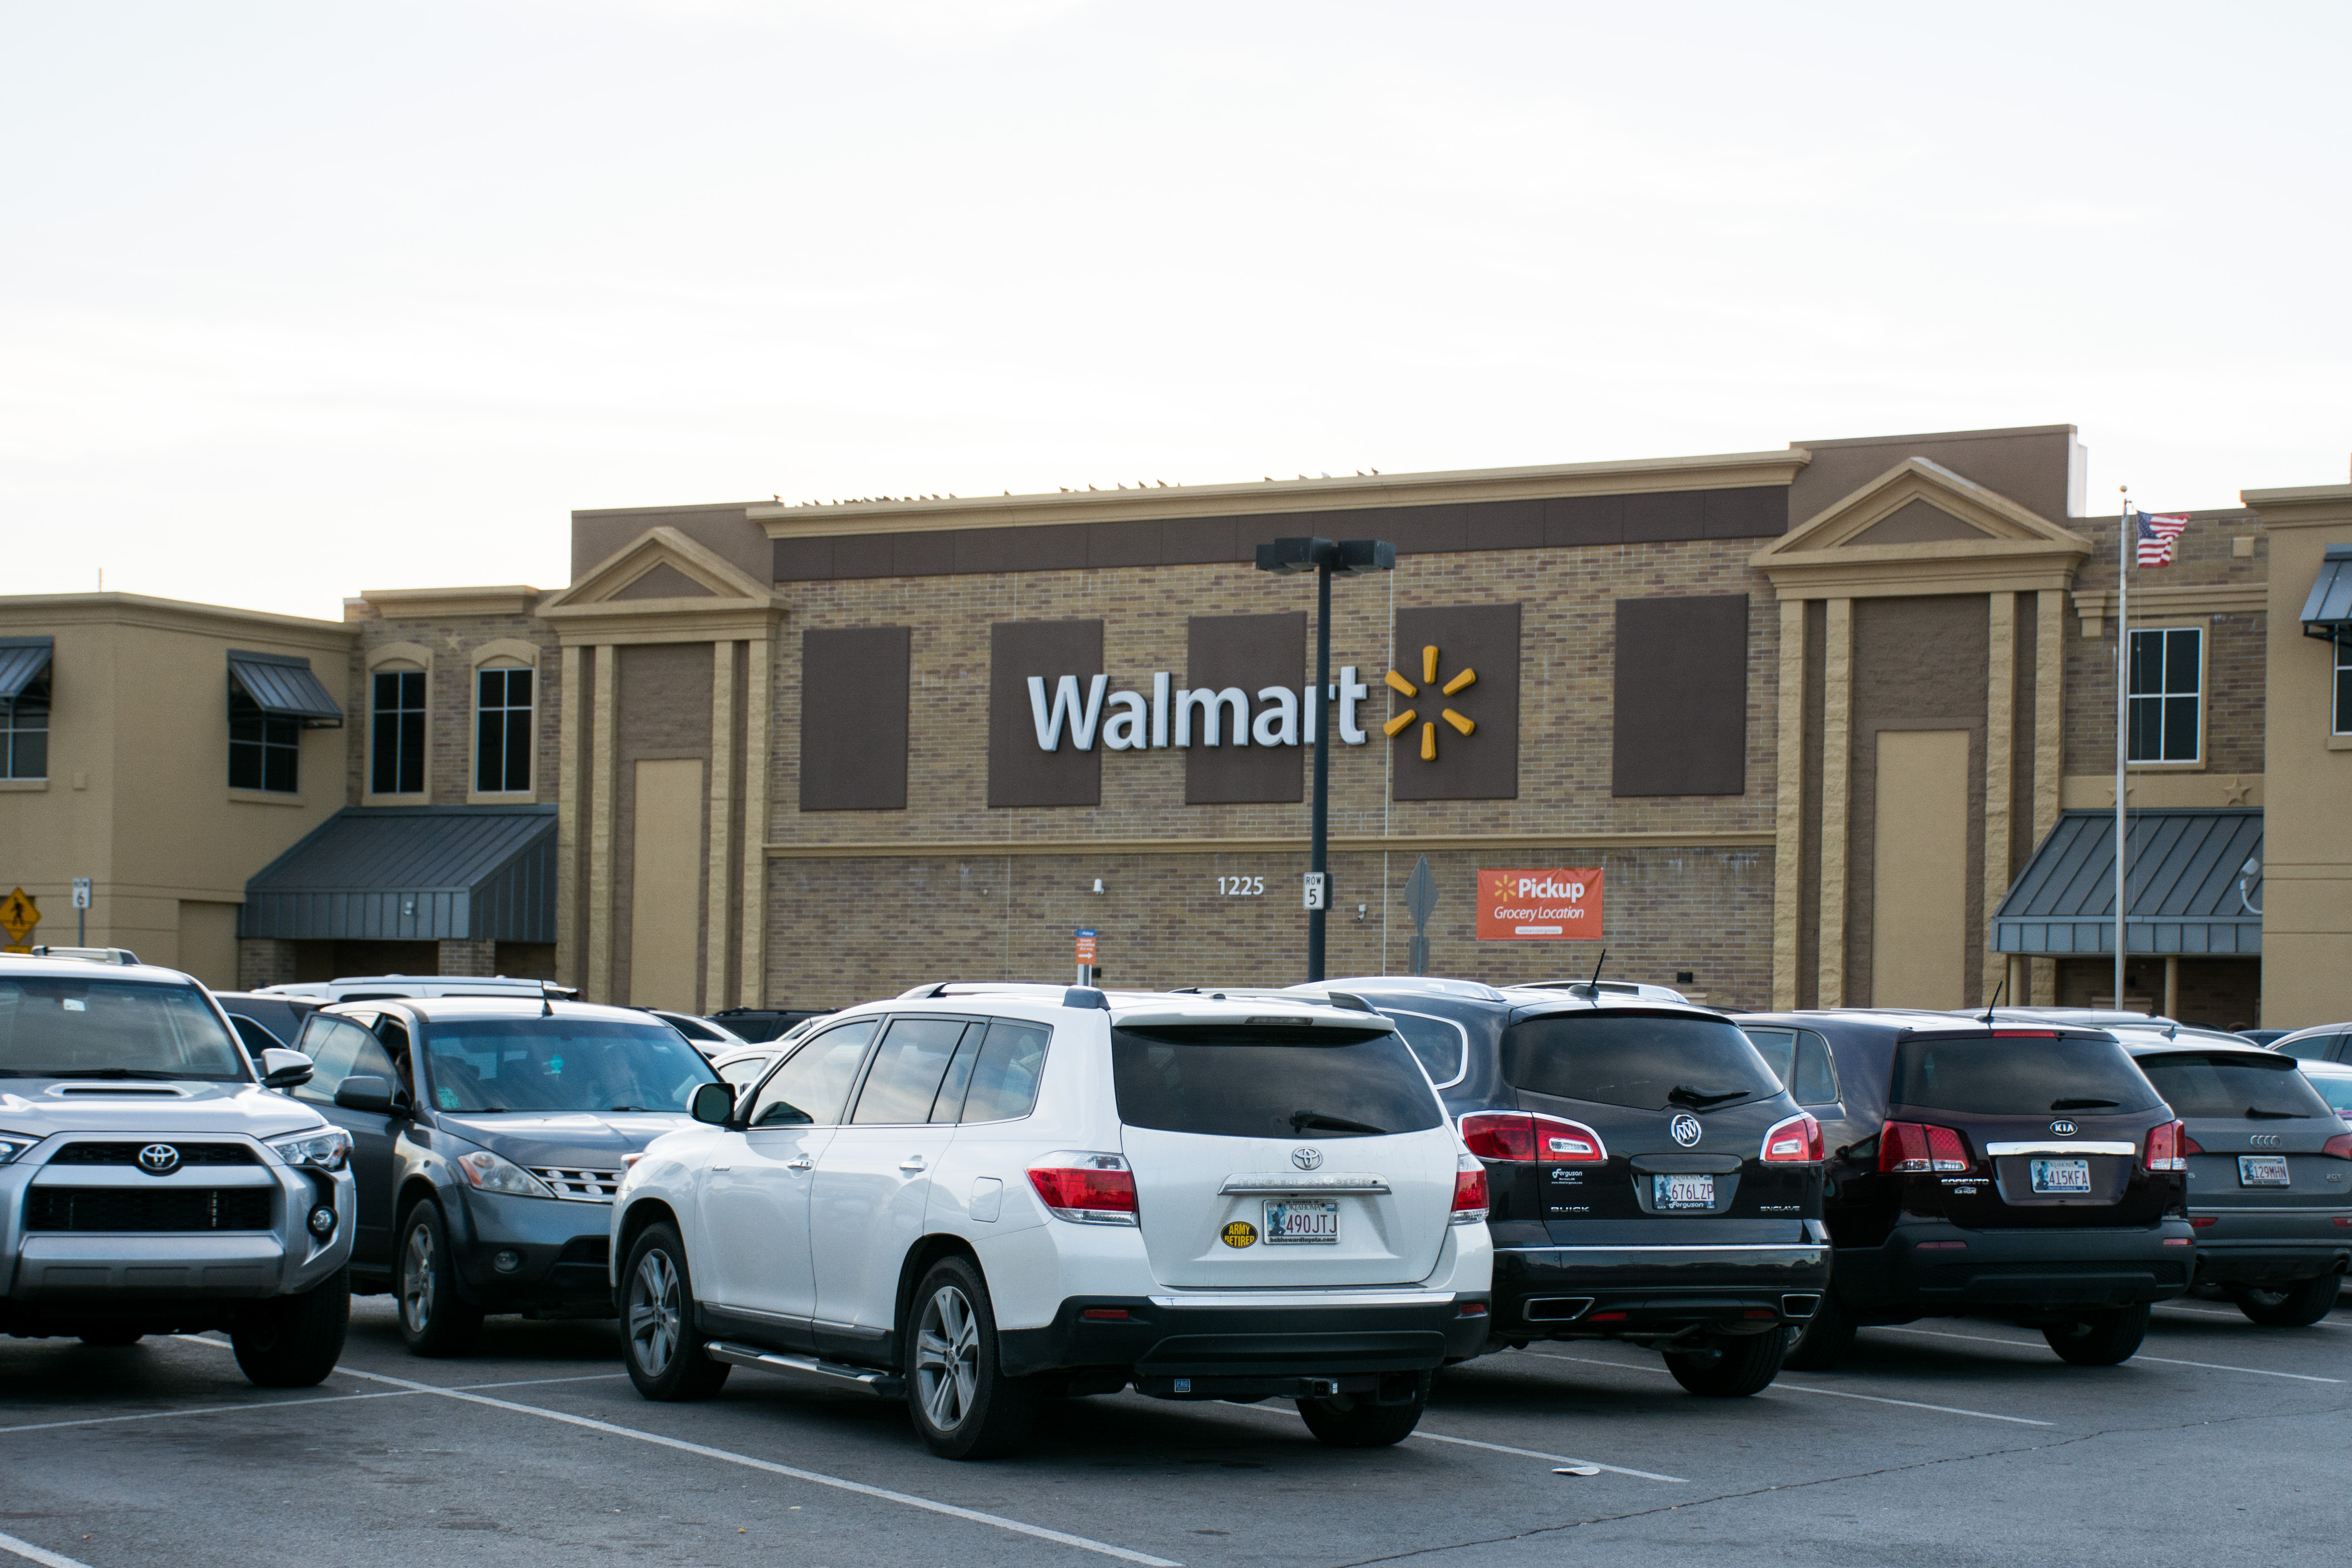 Wal-Mart to close 154 express stores nationwide, six of which are in Oklahoma. Photo by Abby Bellow